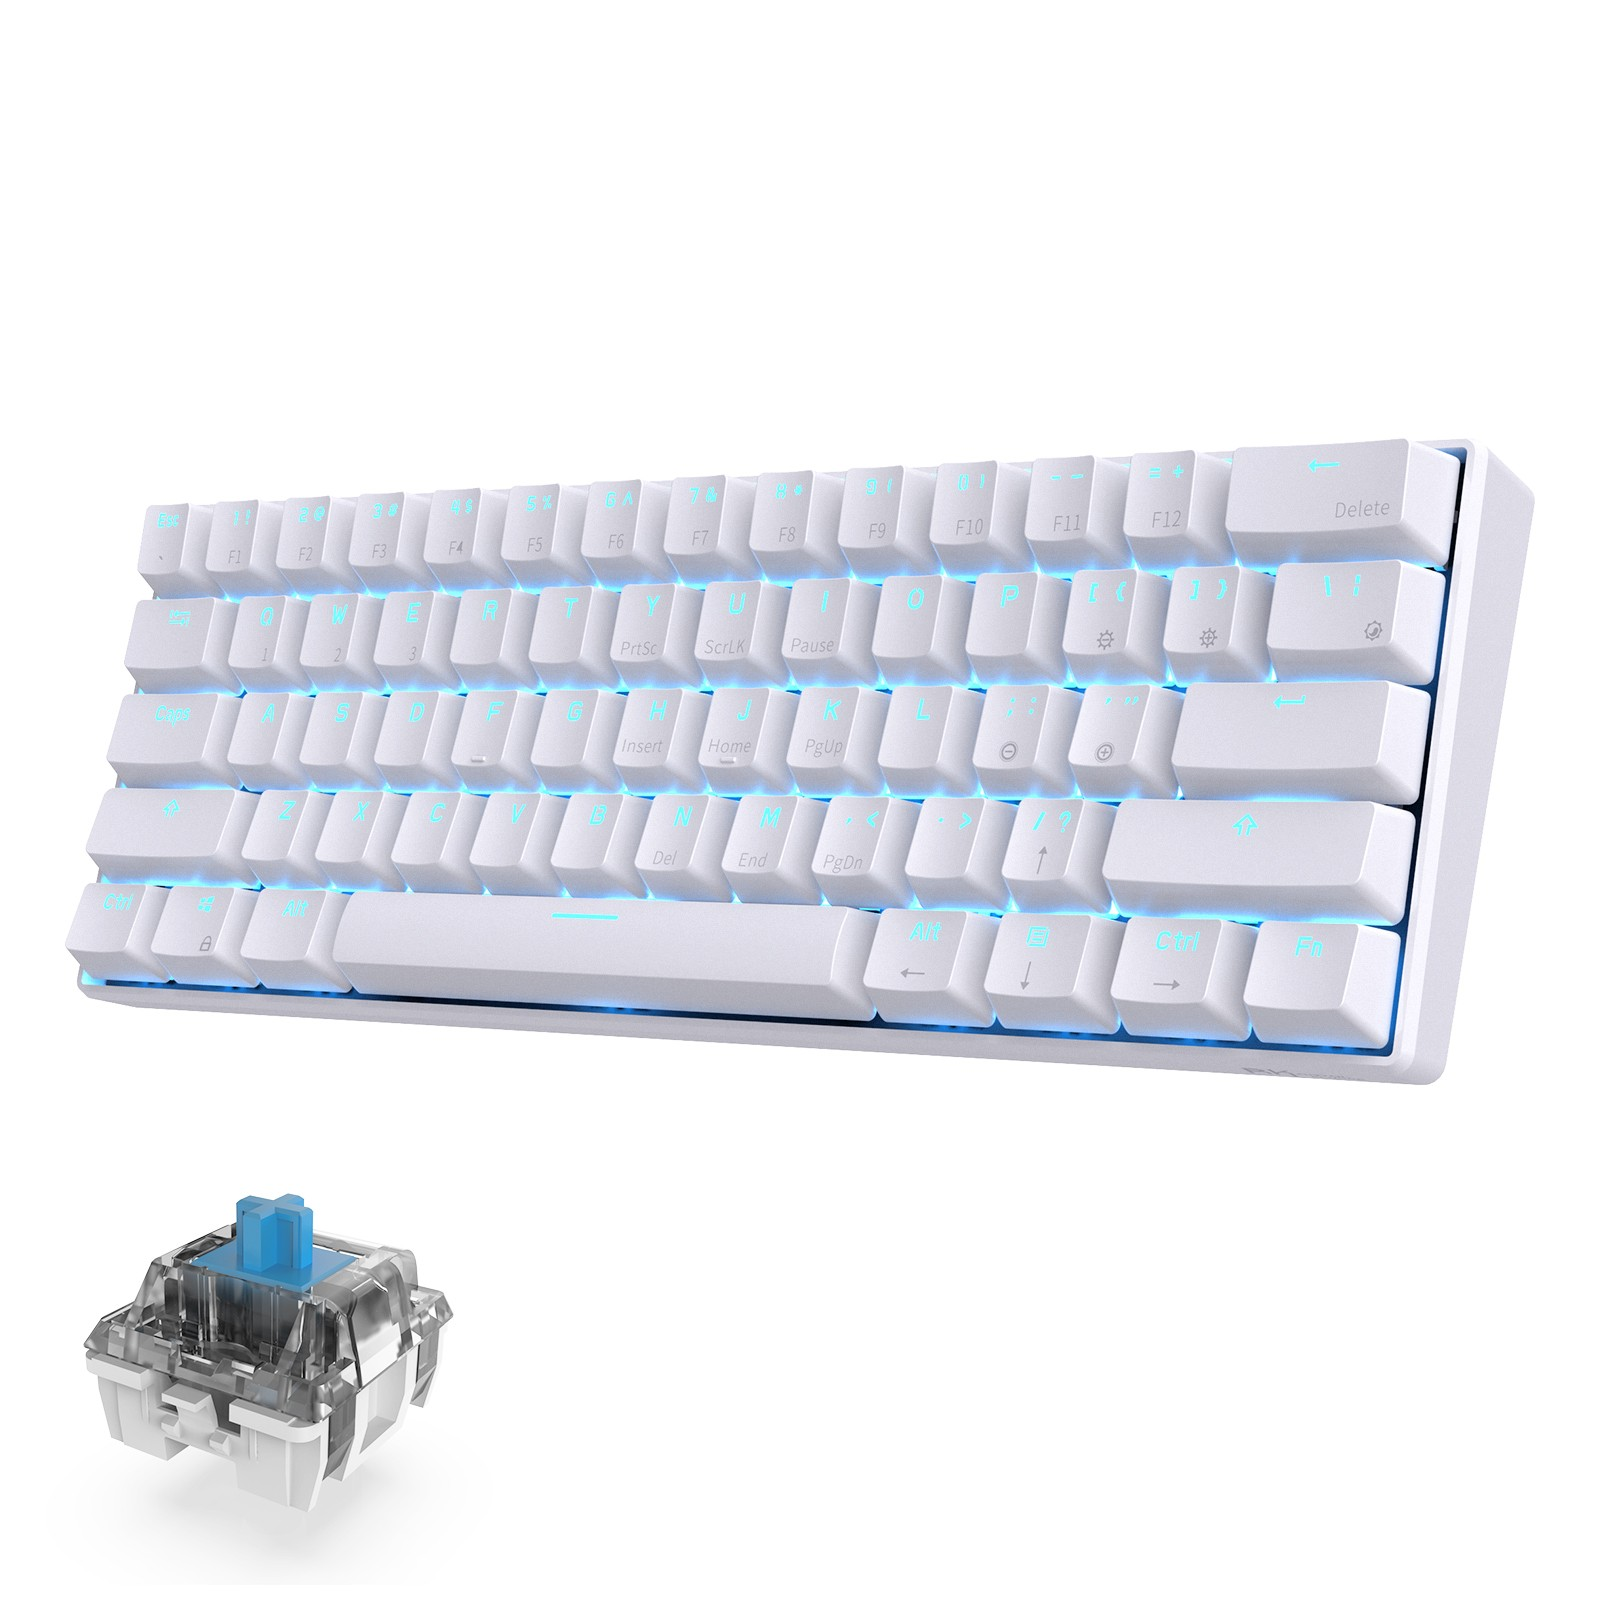 RK ROYAL KLUDGE RK61 Wireless 60% Mechanical Gaming Keyboard, Blue Switch